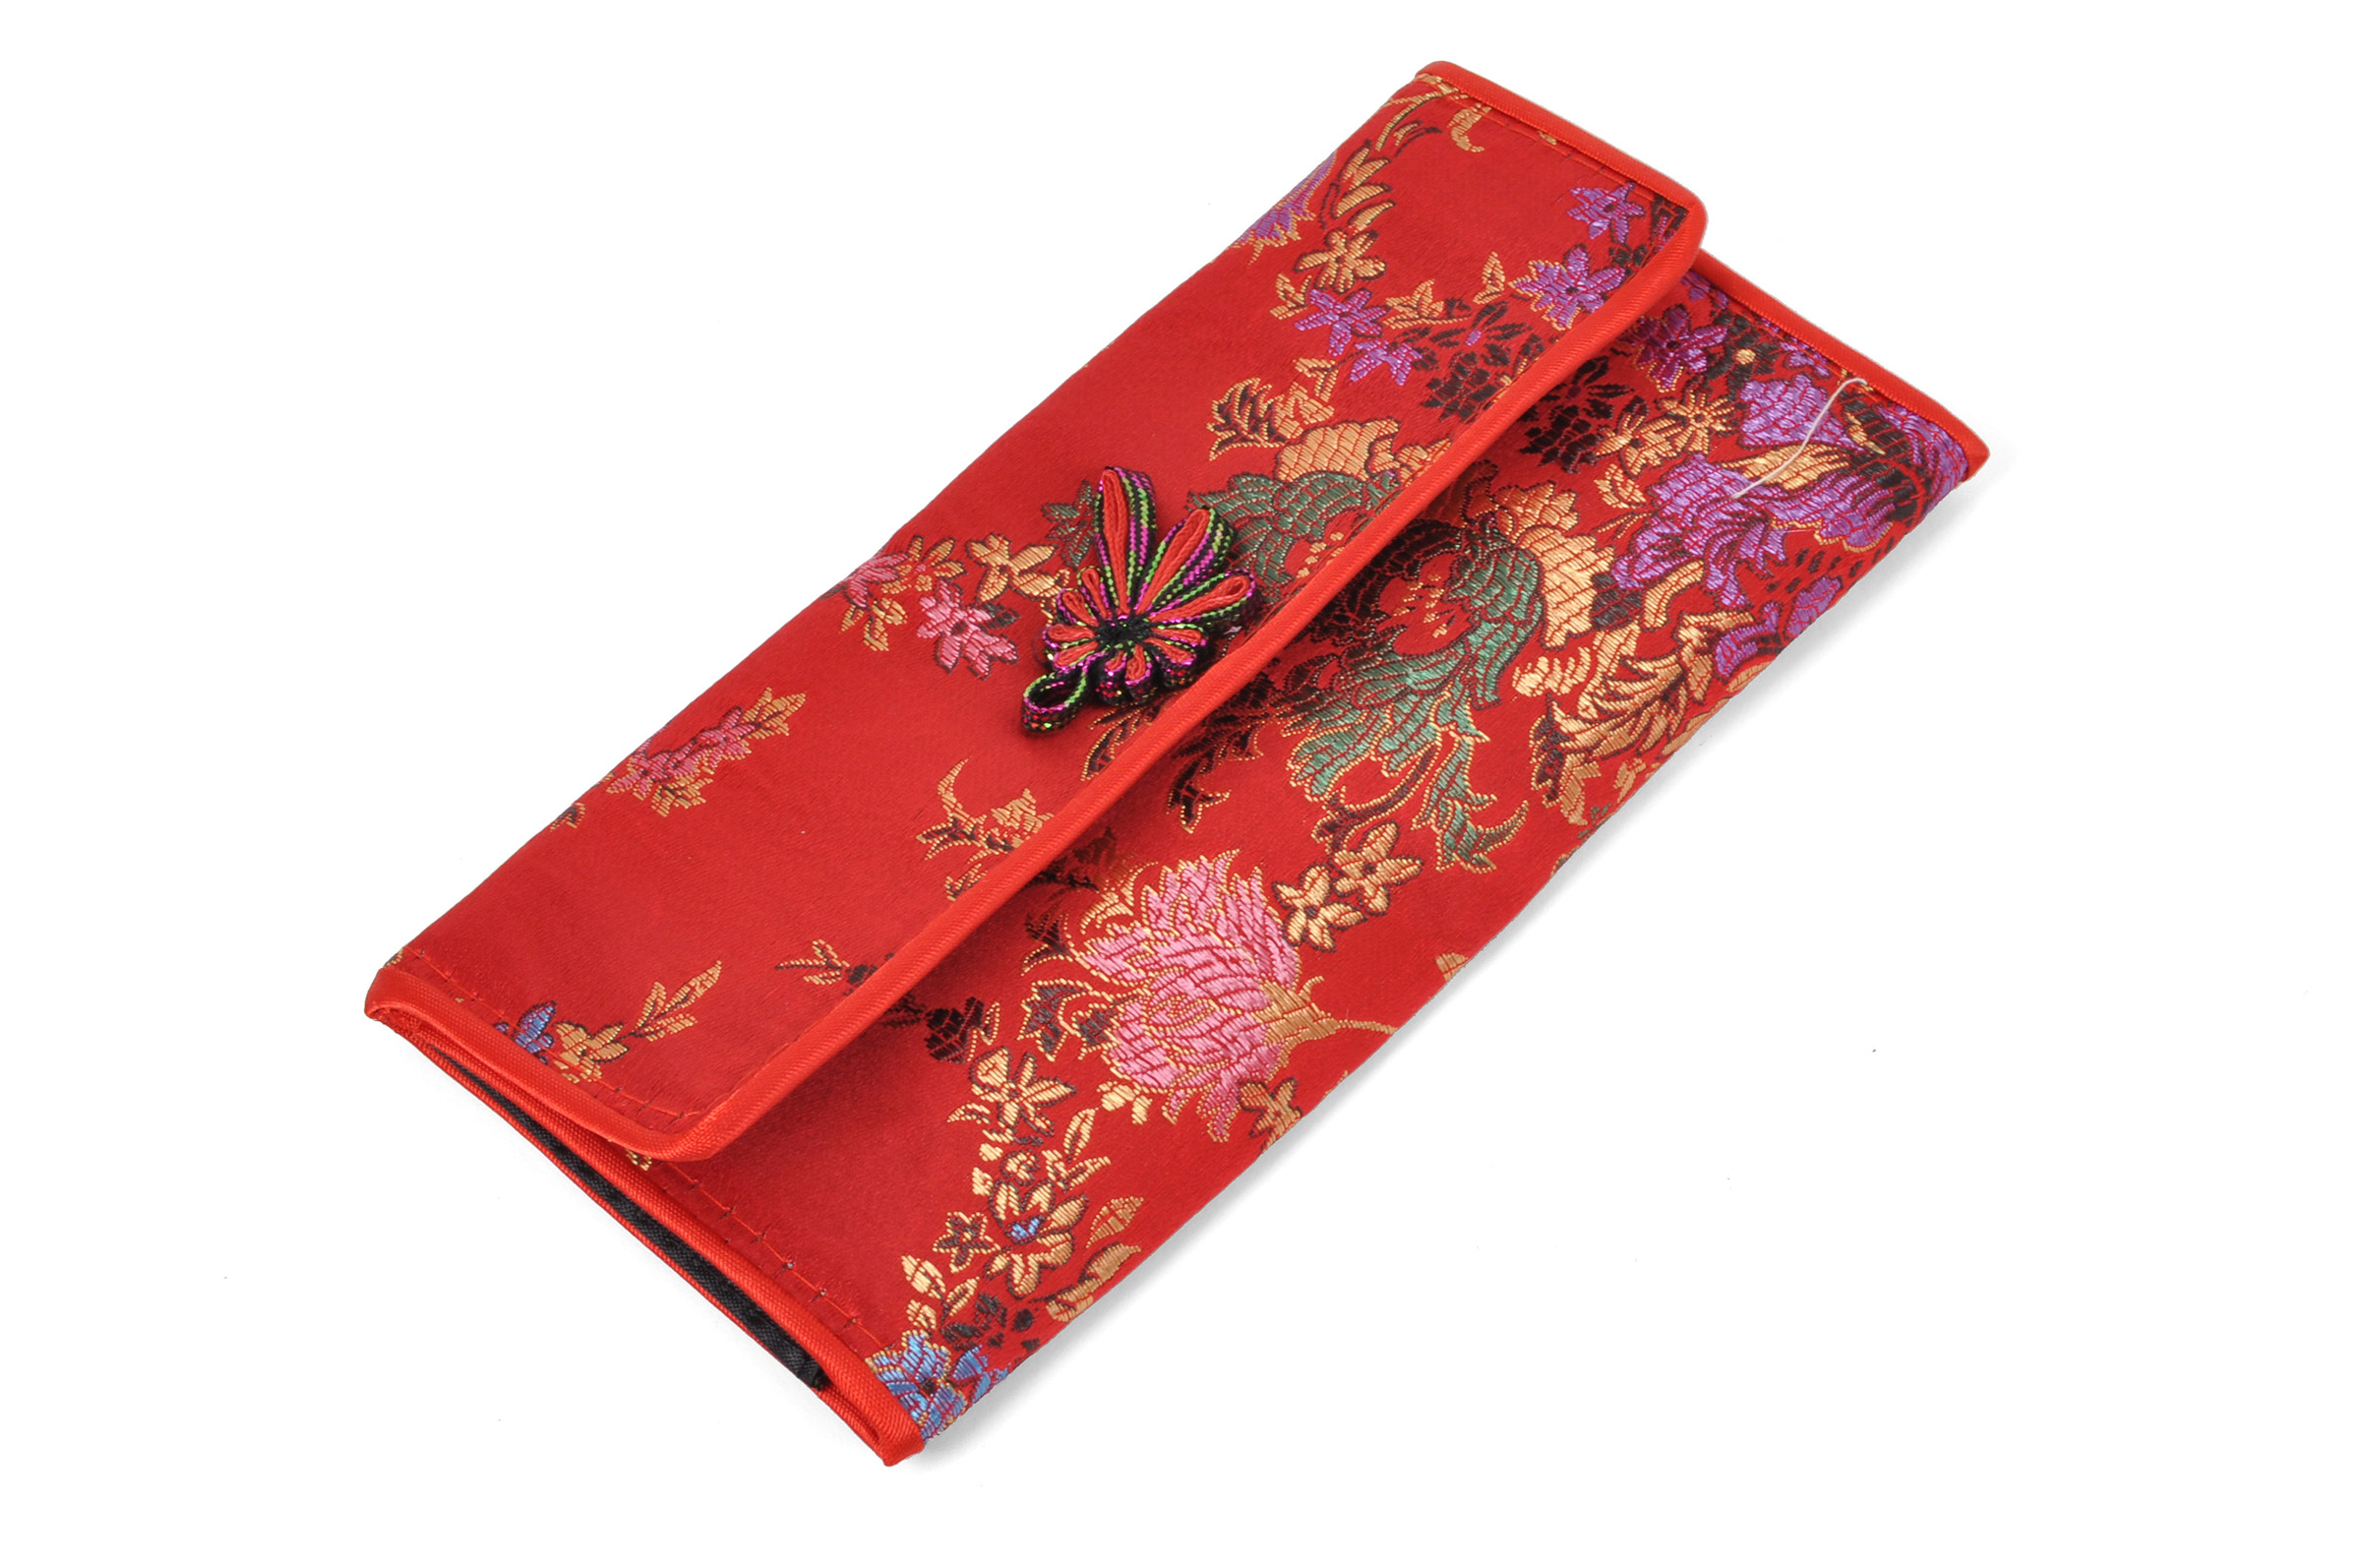 Portefeuille style Chinois